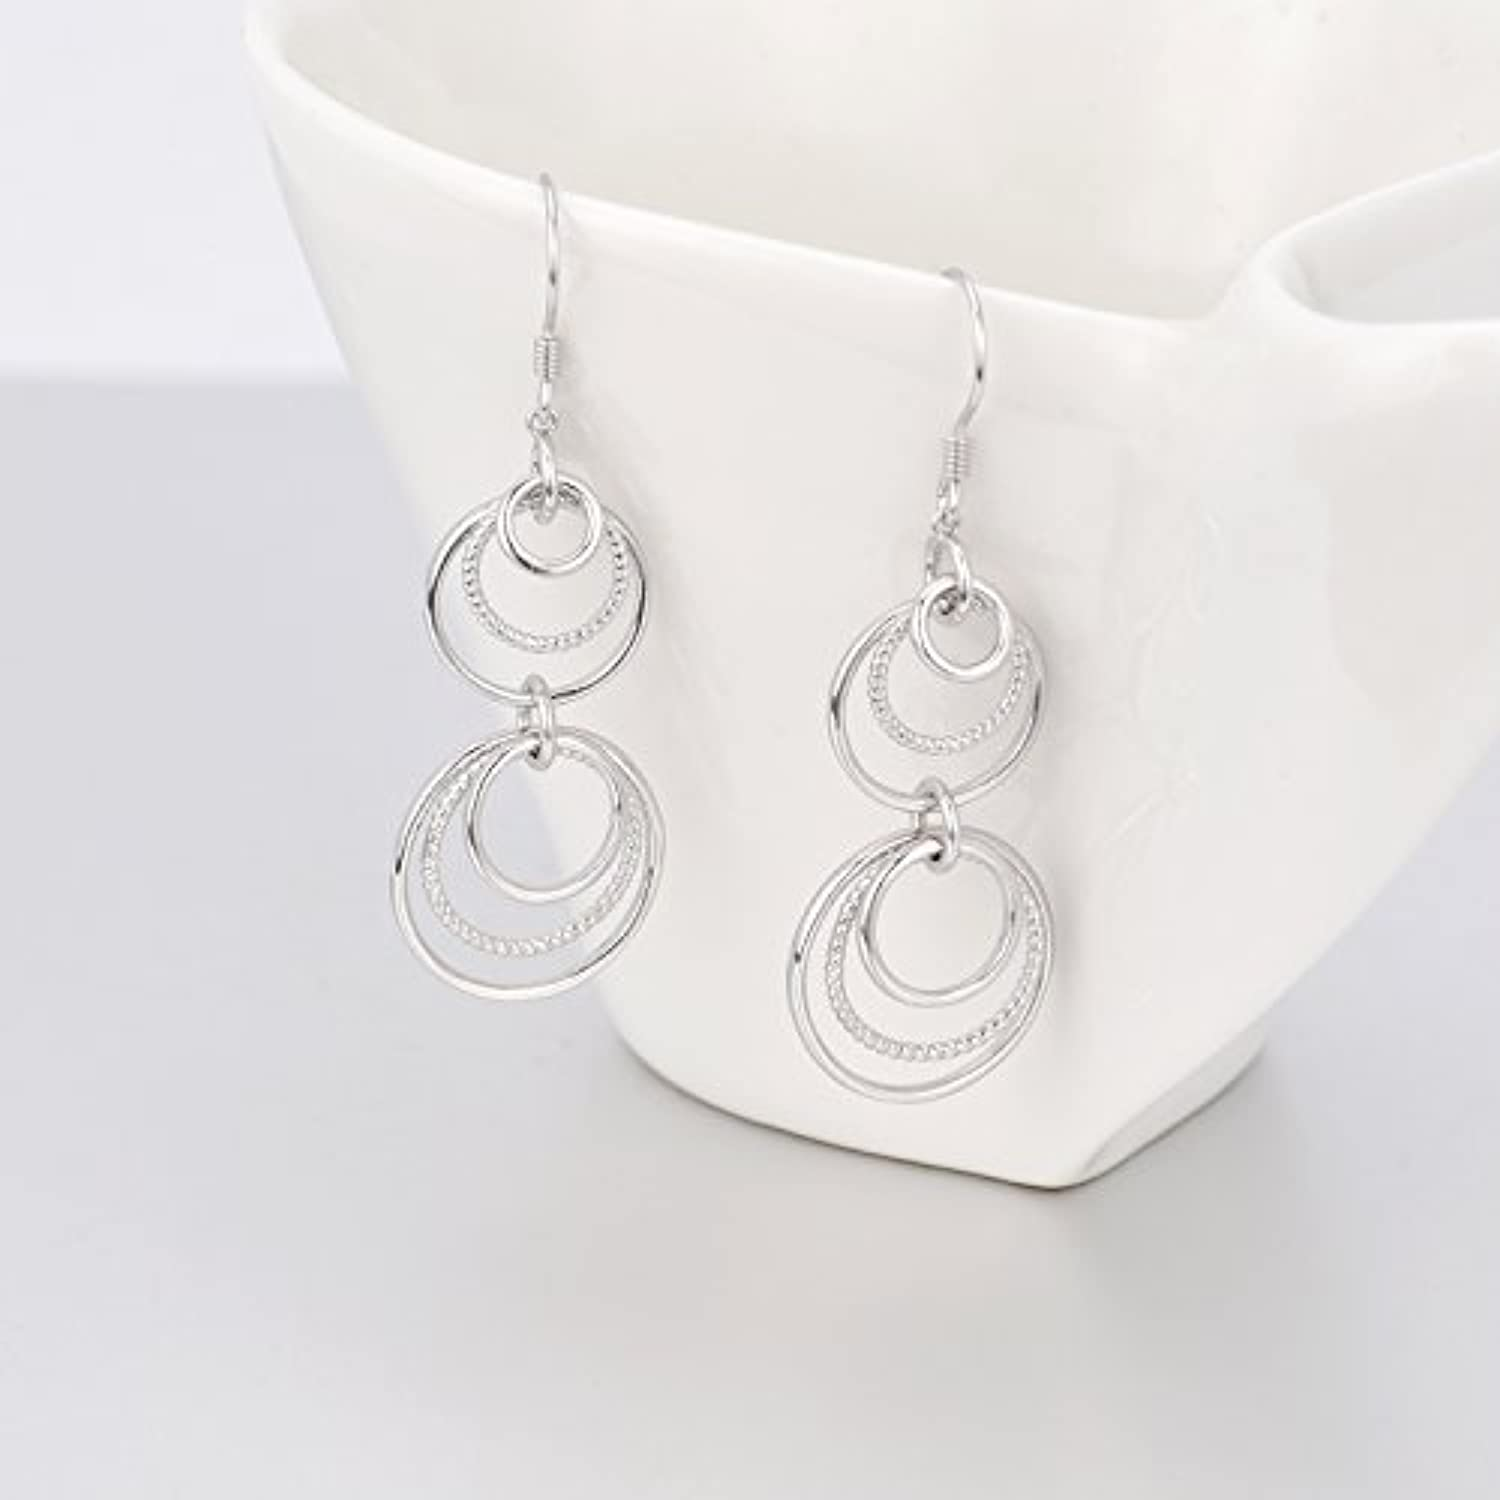 Sterling Silver Infinity Circle Dangle Earrings Interlocking Hoops Drops Jewelry for Women Girls Mother's Day Birthday Gifts